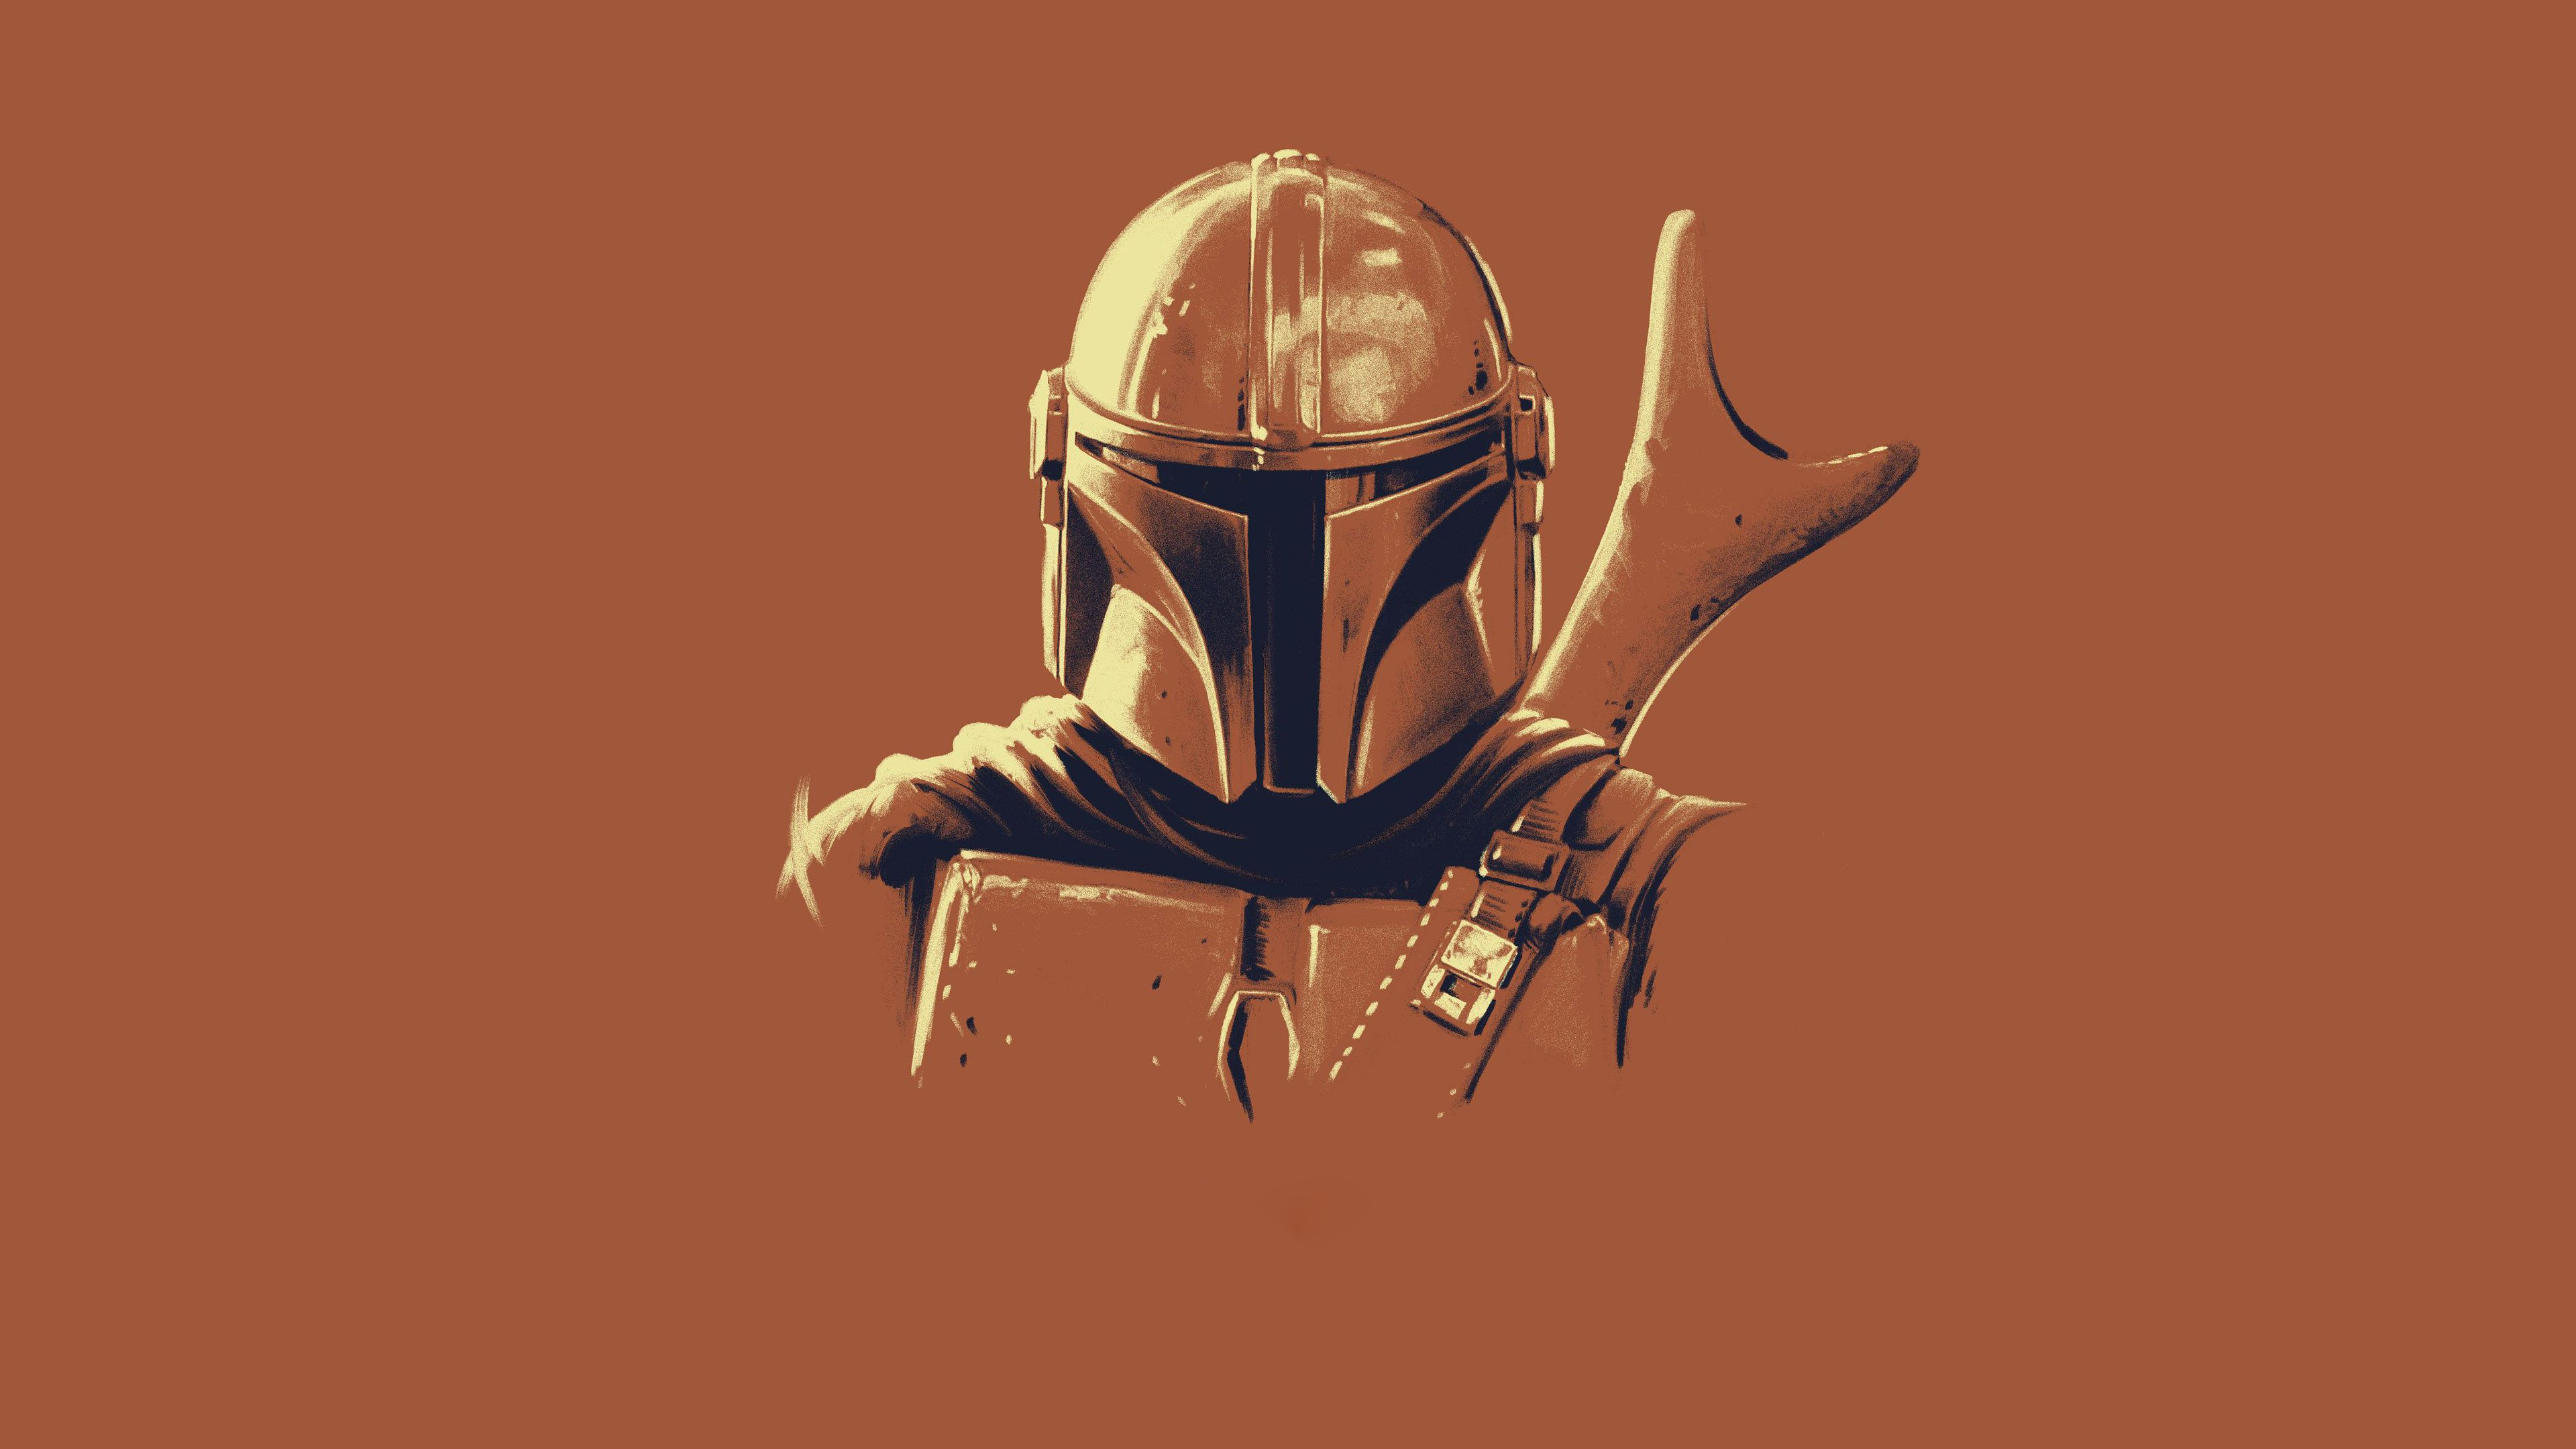 4k The Mandalorian Wallpapers Top Free 4k The Mandalorian Backgrounds Wallpaperaccess